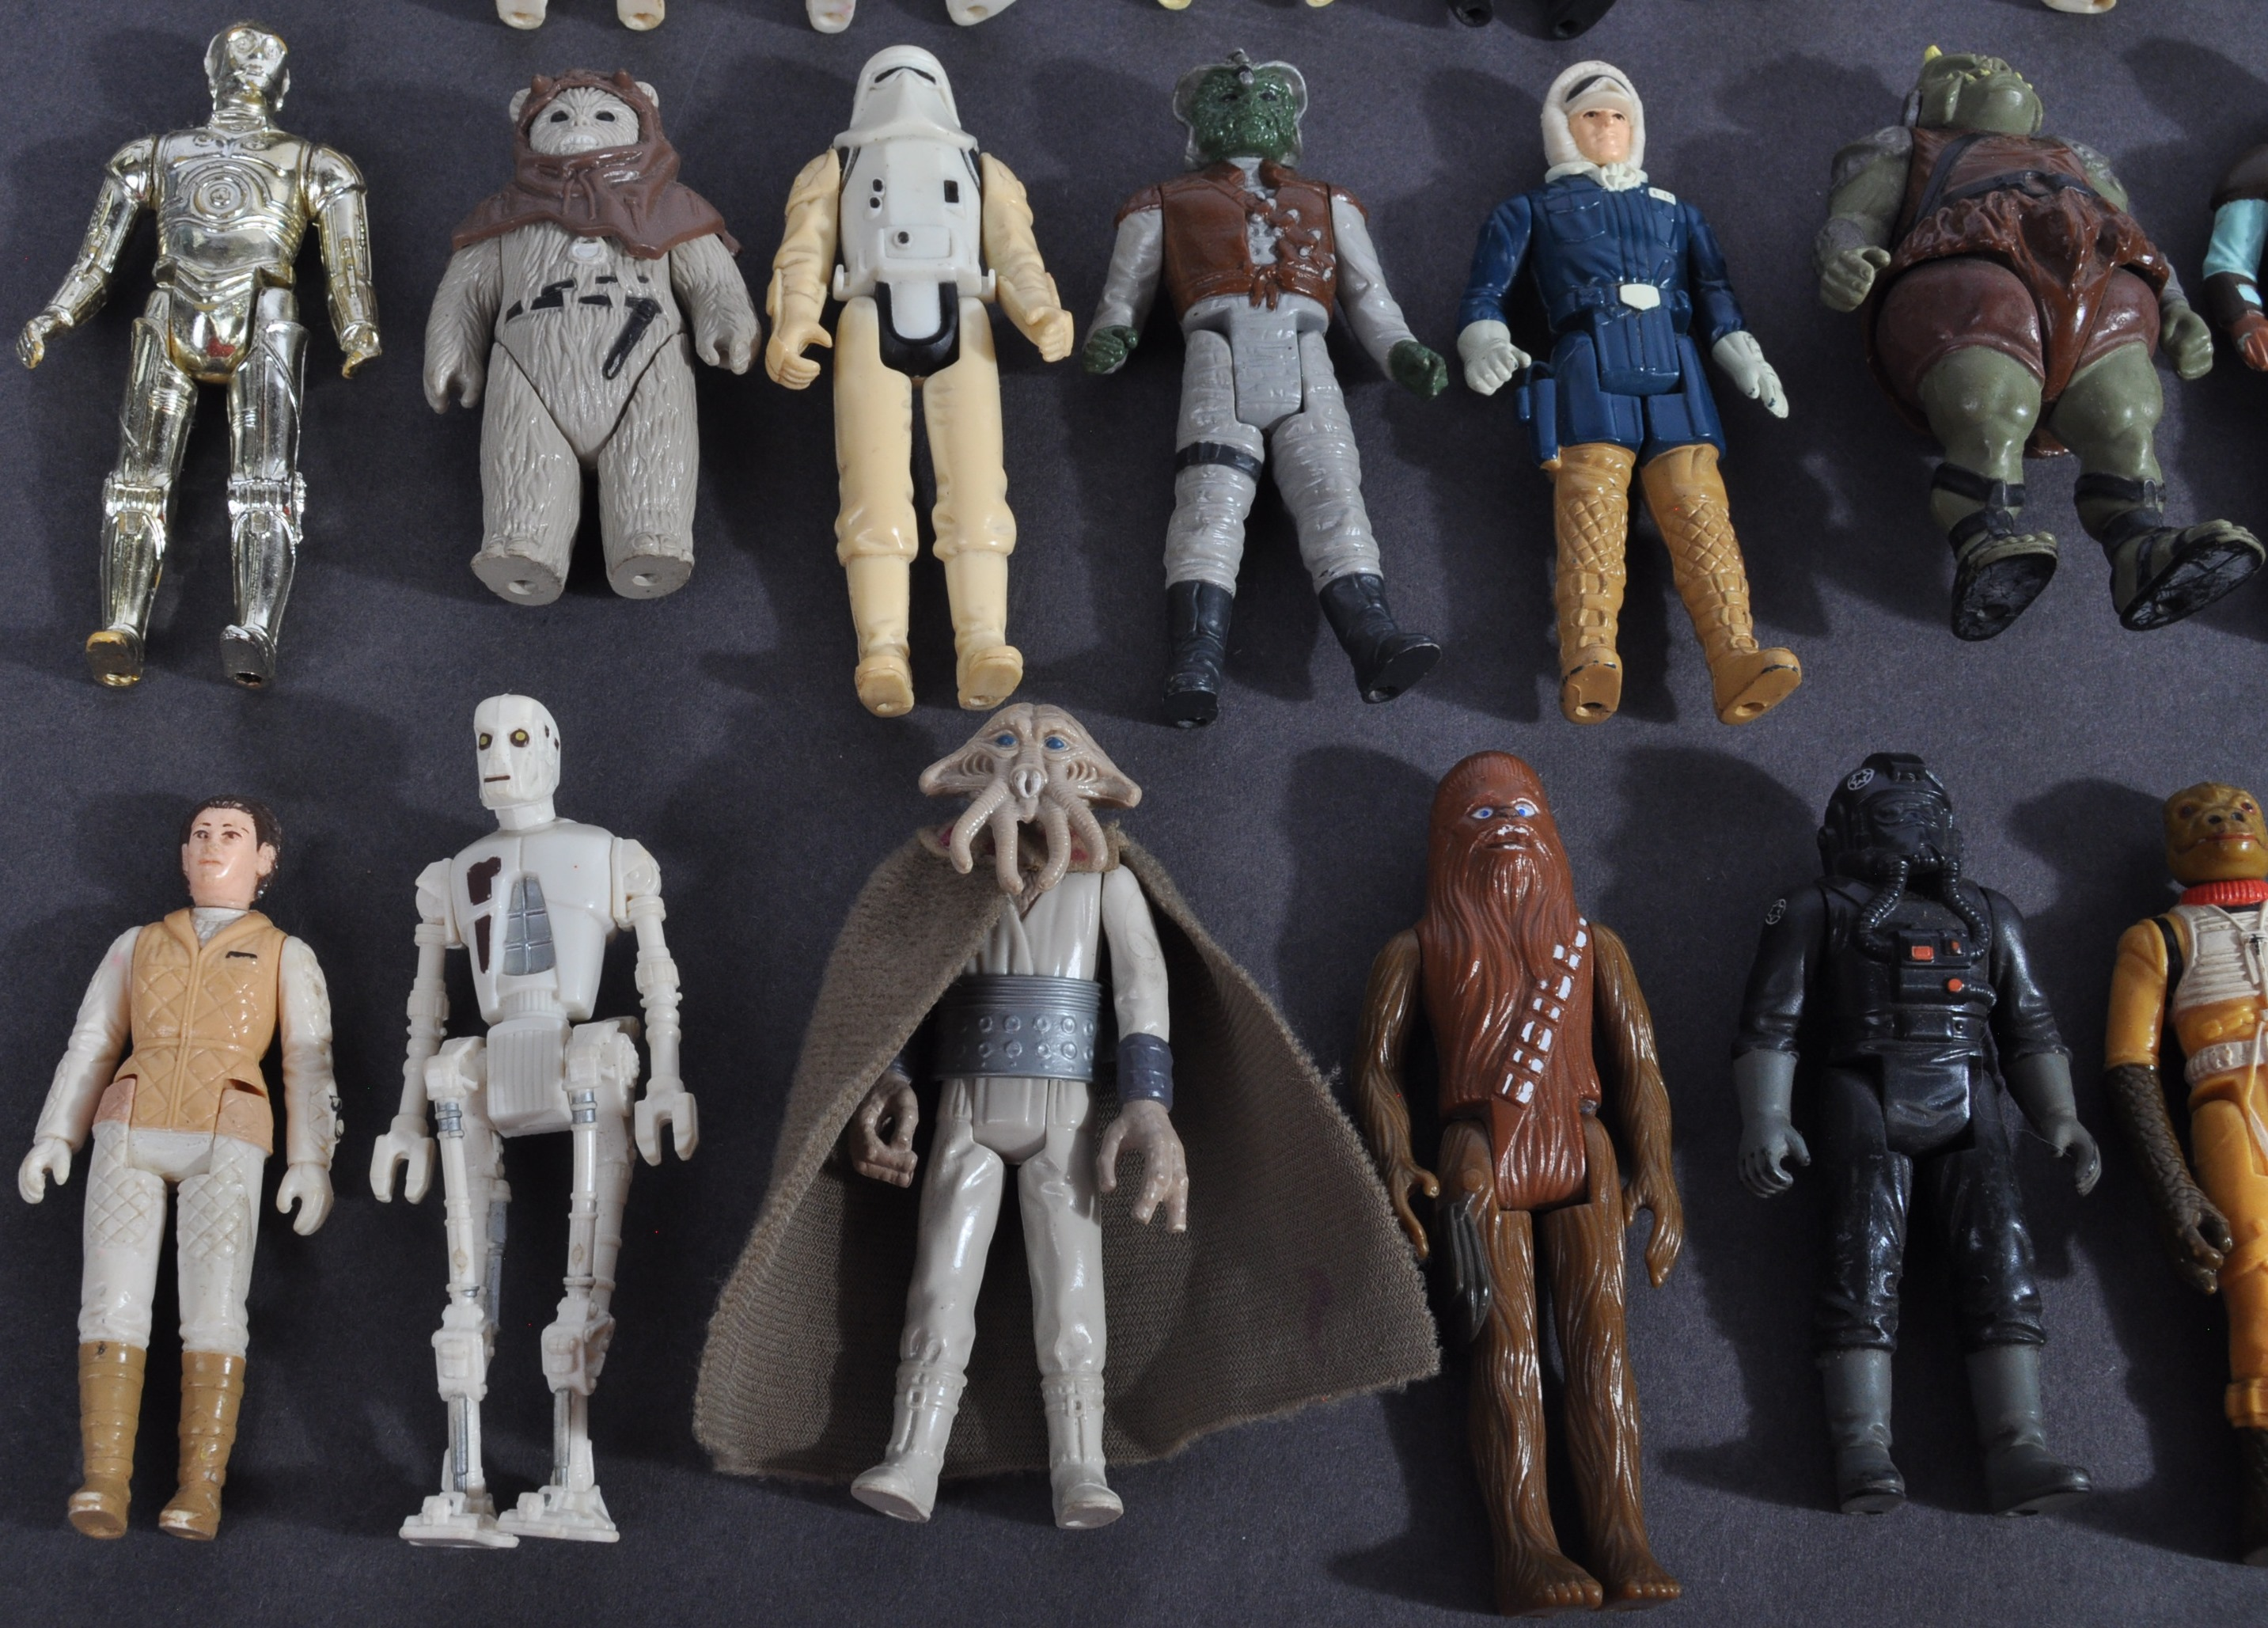 STAR WARS - COLLECTION OF VINTAGE KENNER / PALITOY ACTION FIGURES - Image 5 of 7